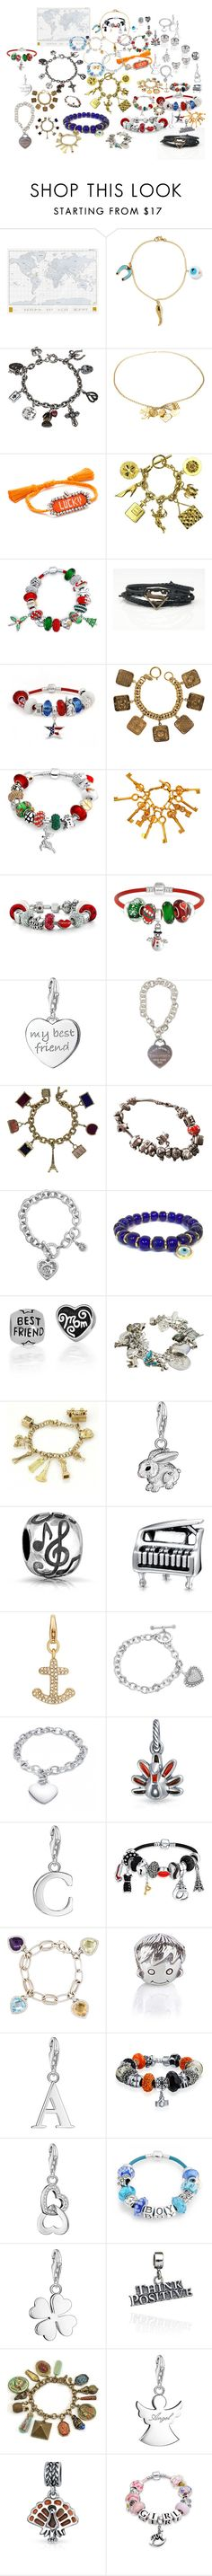 """Charm Bracelets"" by airandearth on Polyvore featuring Luckies, IaM by Ileana Makri, Sweet Romance, Chanel, Shourouk, Bling Jewelry, Thomas Sabo, Tiffany & Co., Louis Vuitton and Pandora"